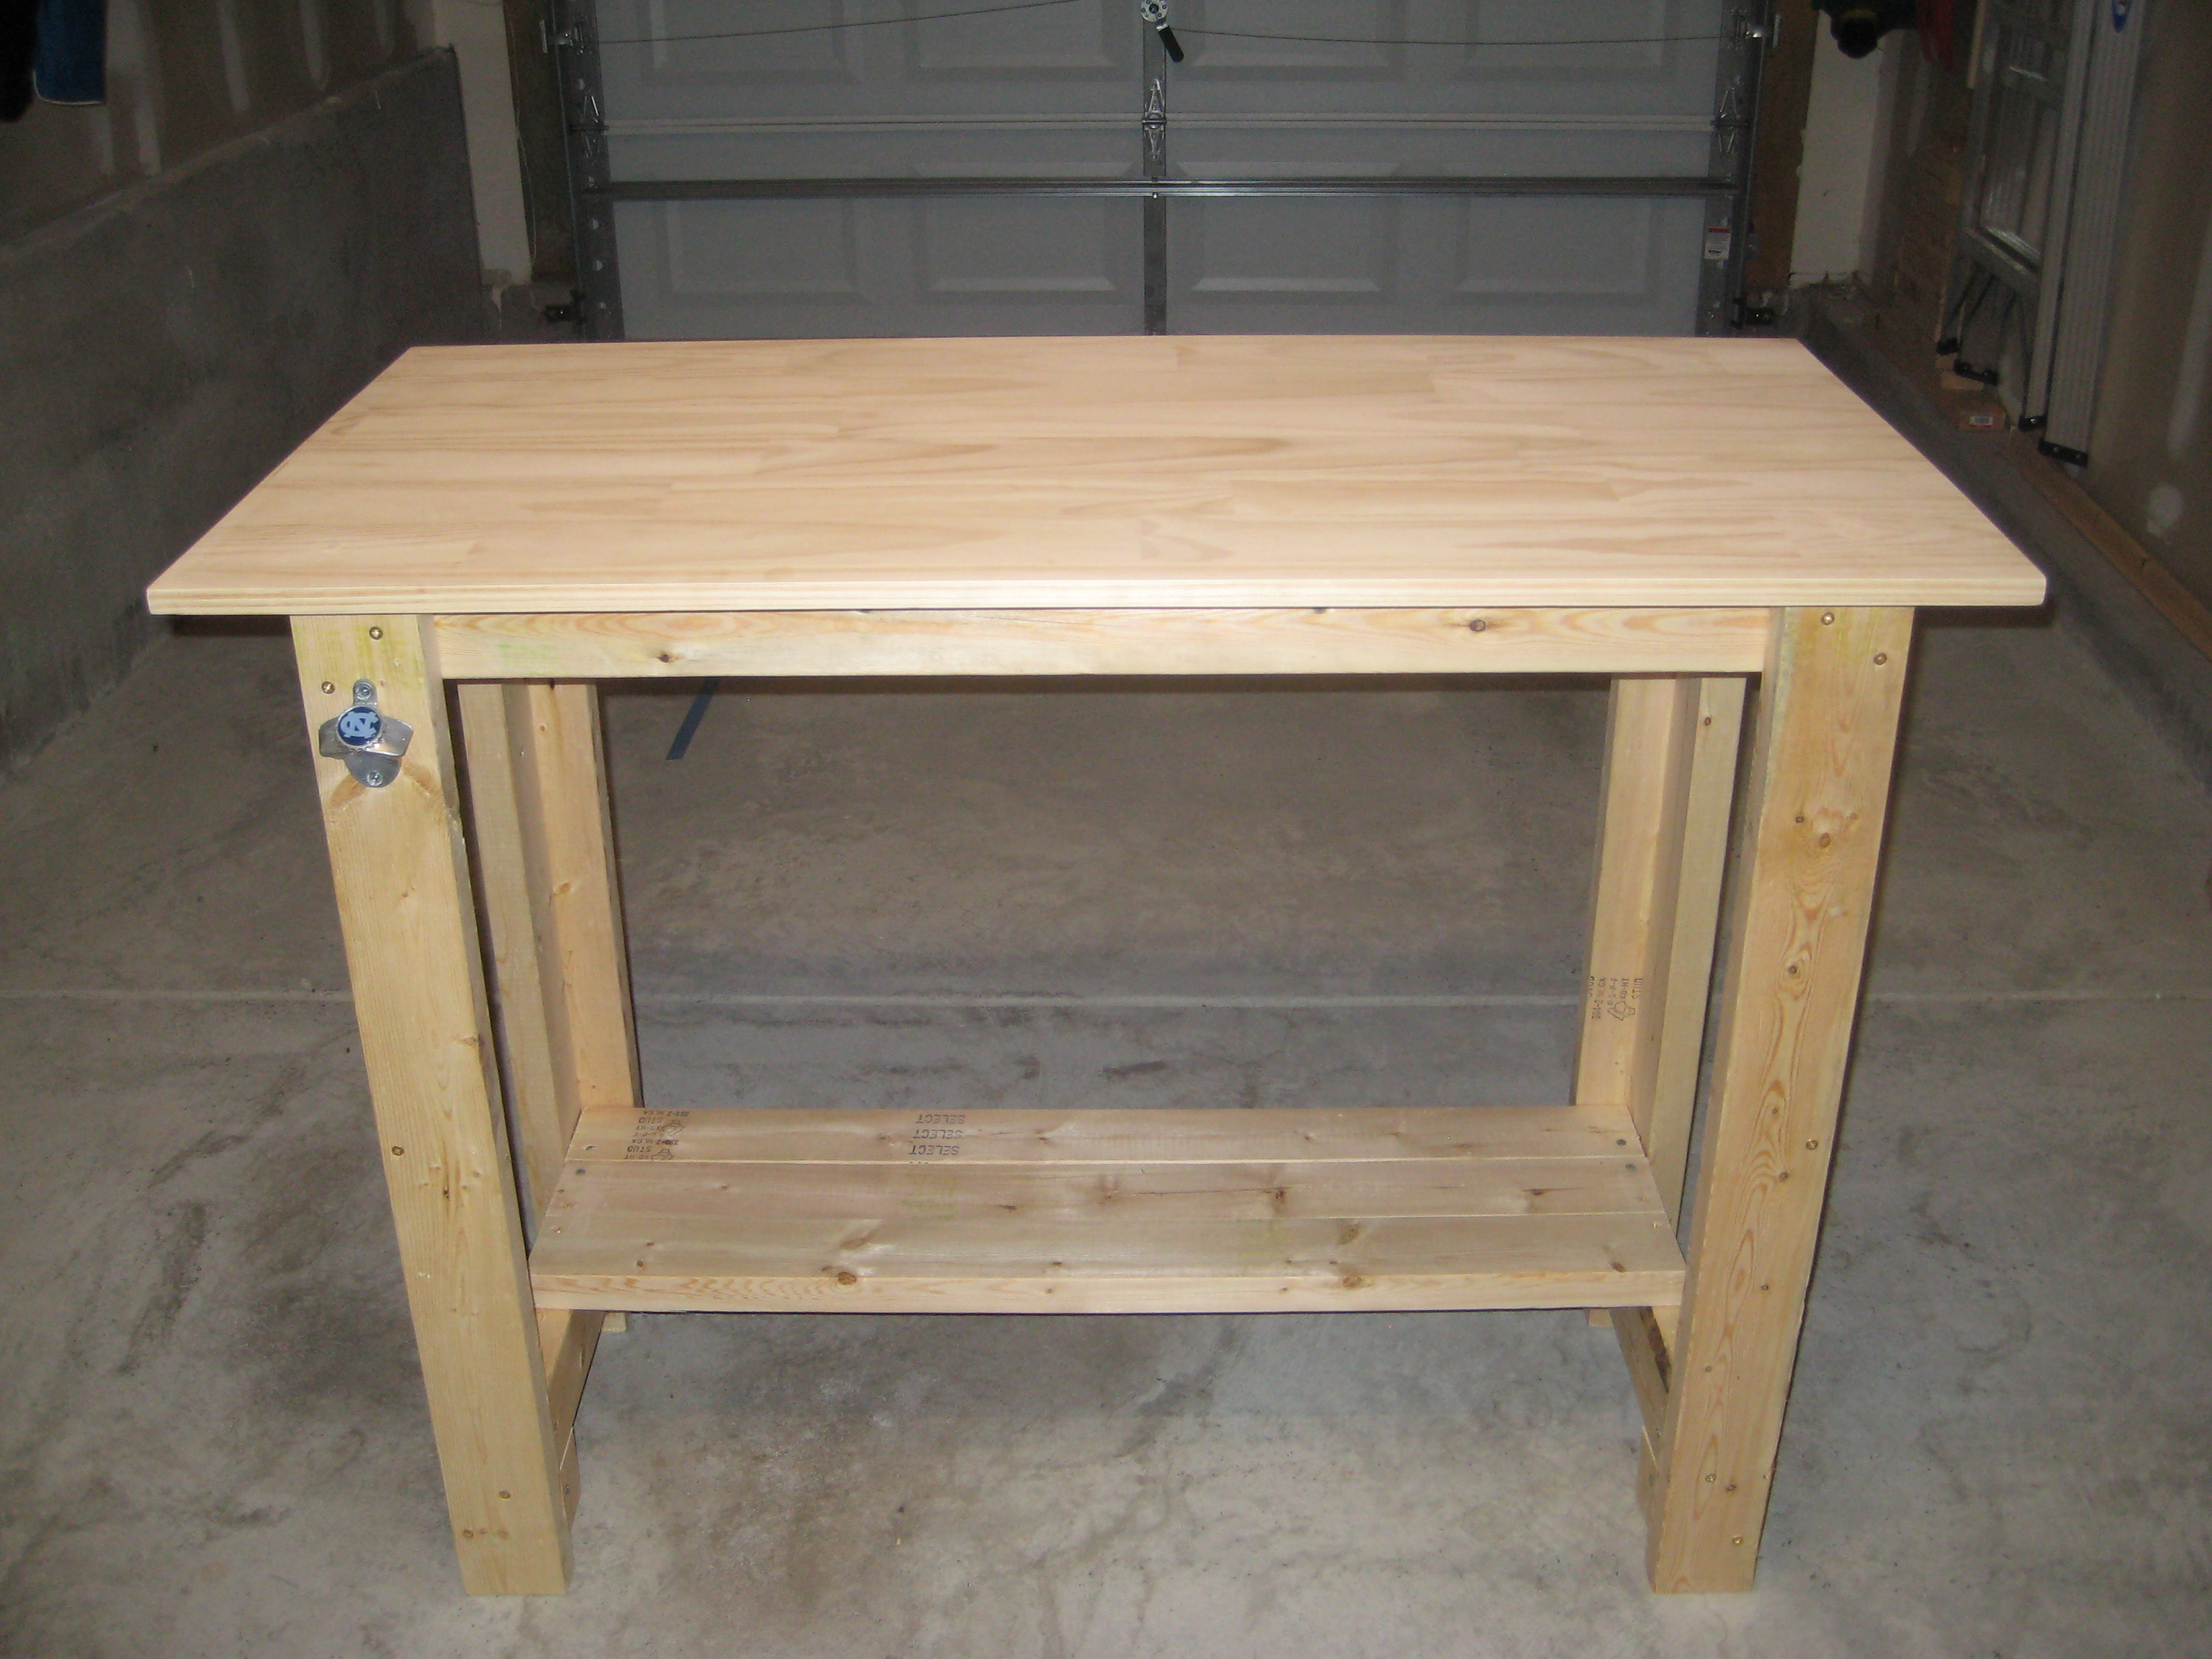 Ana White | Sturdy Work Bench - First project completed! - DIY ...